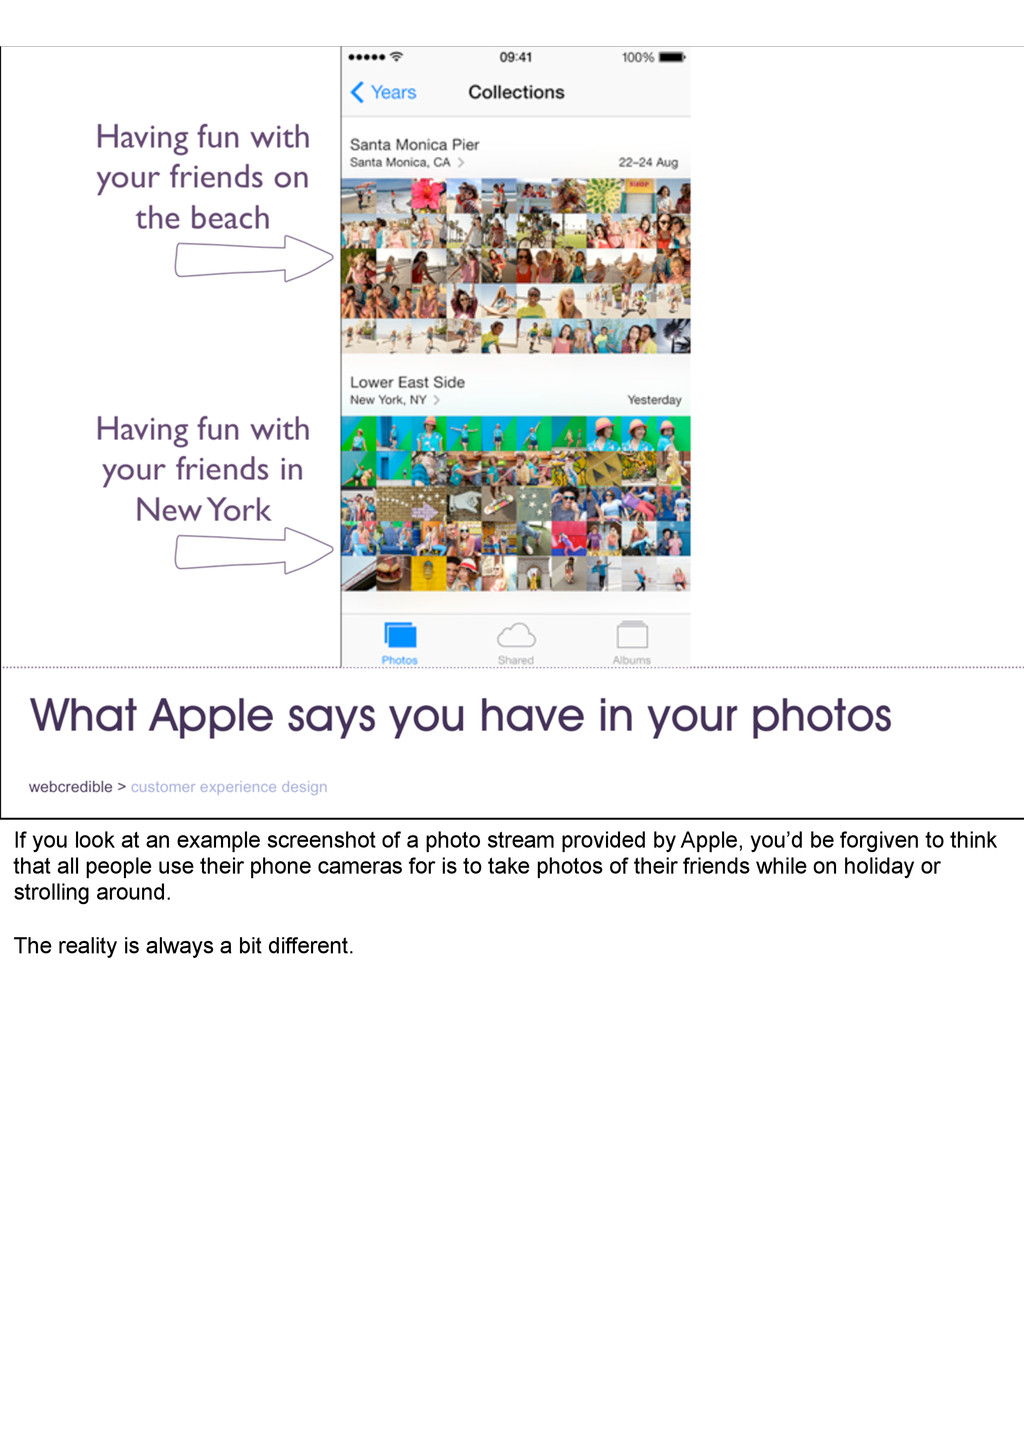 If you look at an example screenshot of a photo...